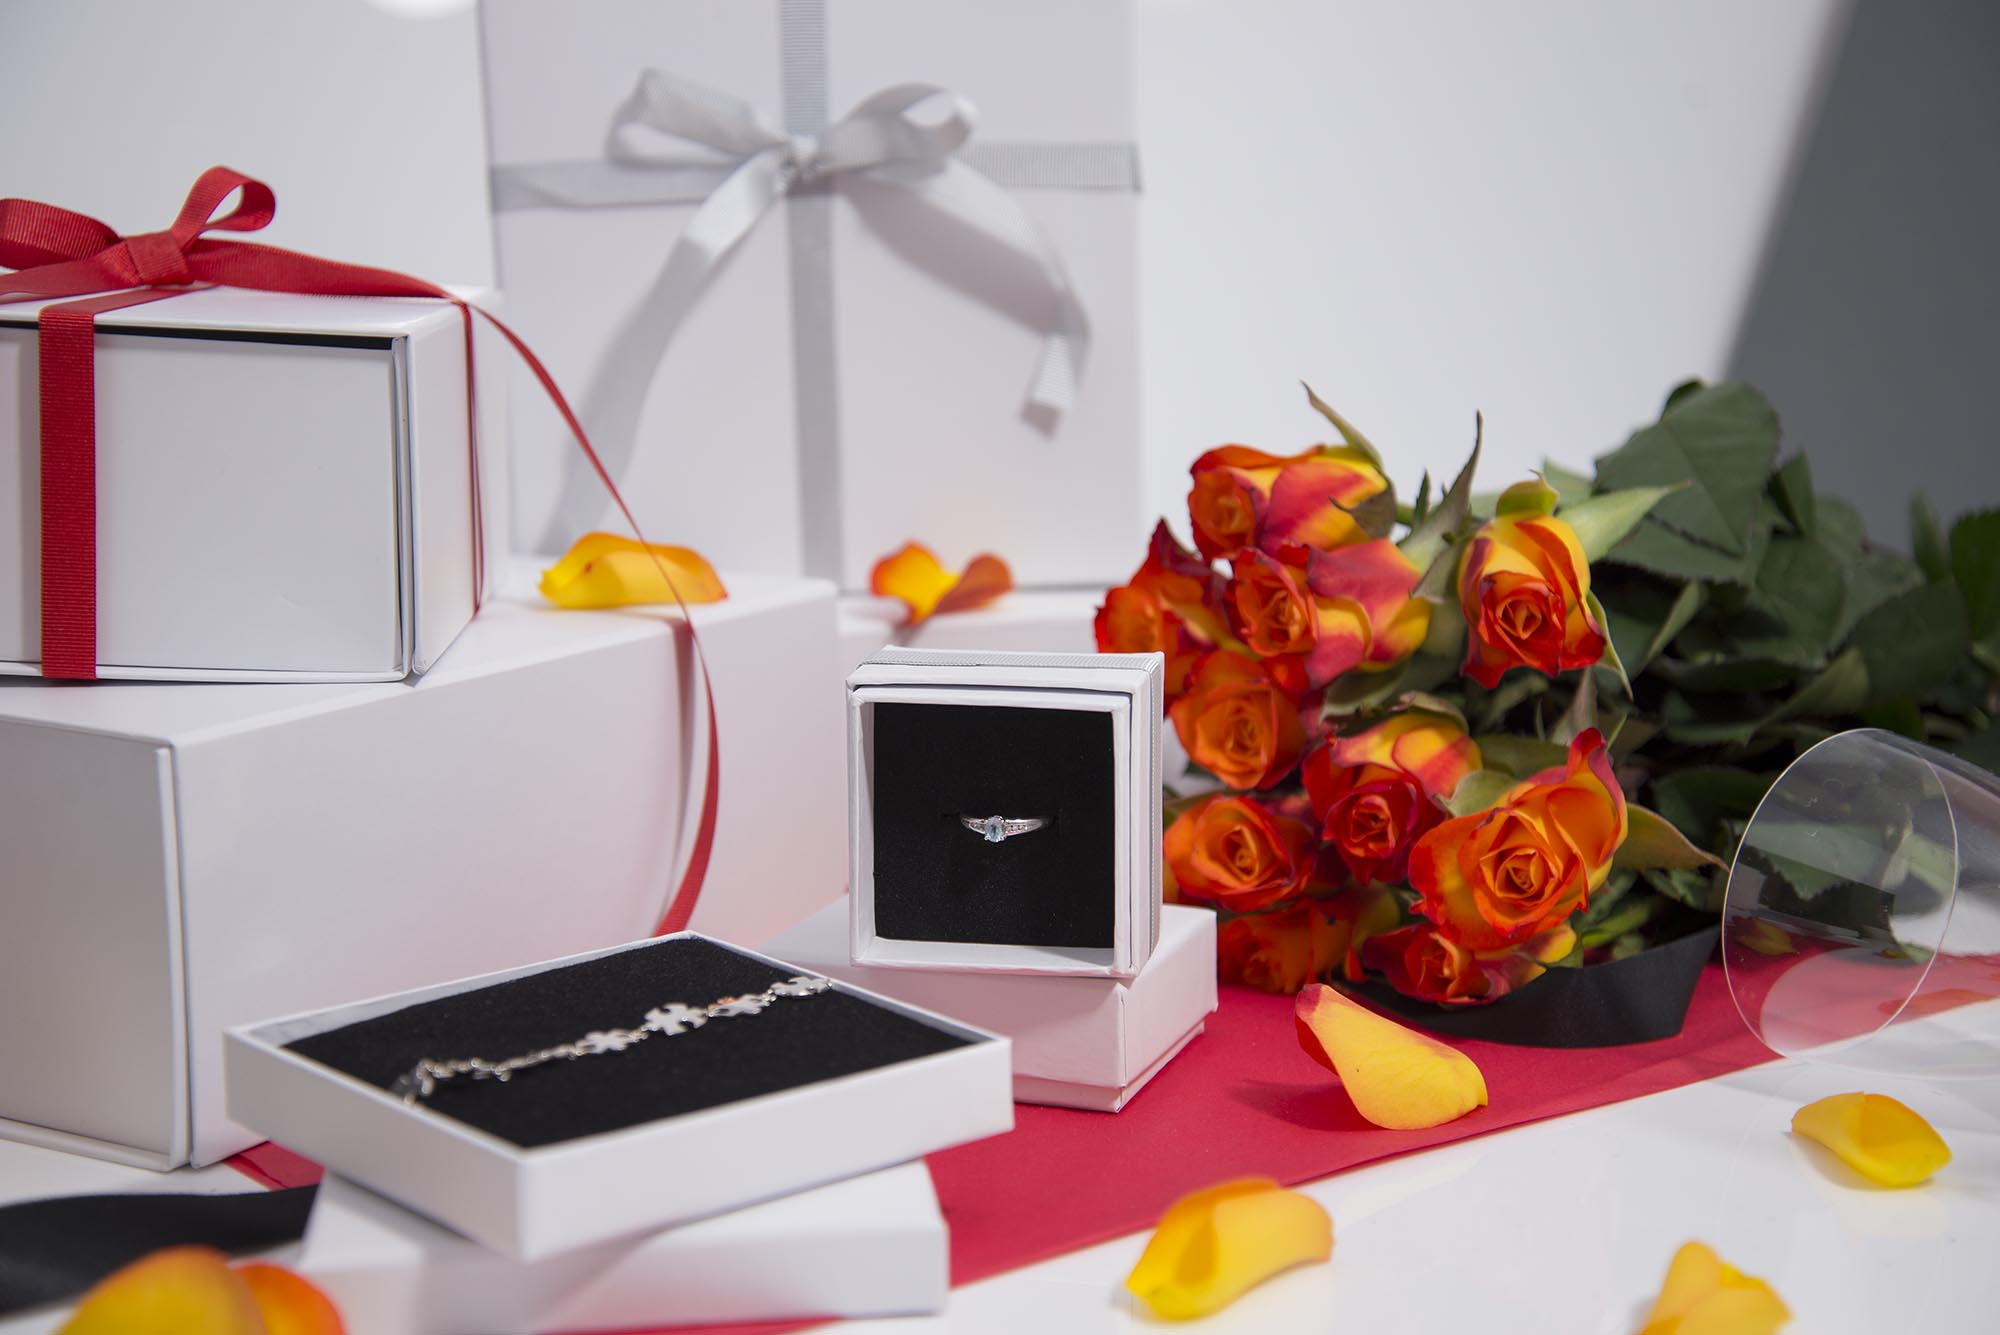 Wednesday #wrapspiration - Christmas Gift Wrapping Ideas for Wedding Favours